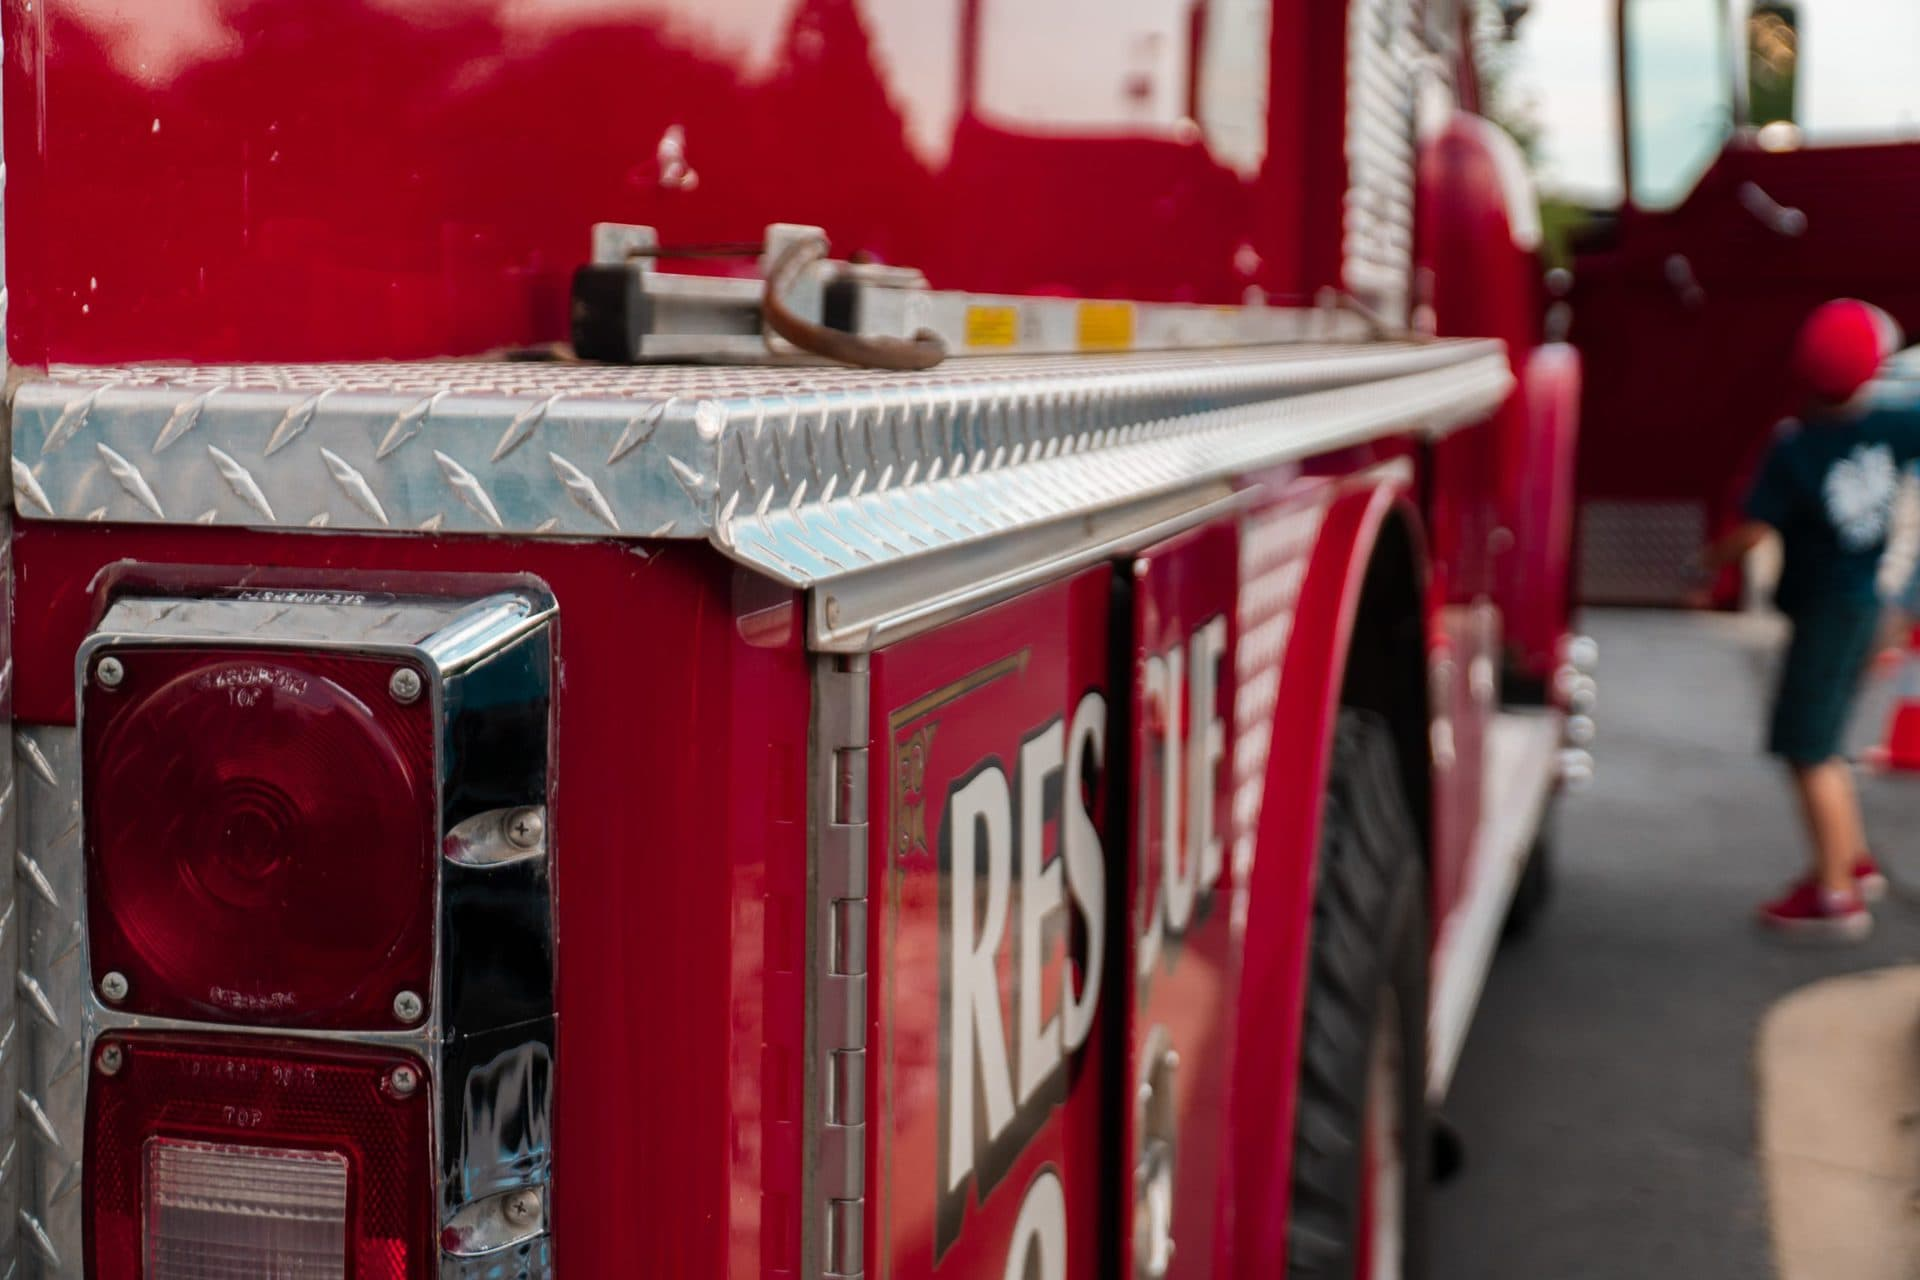 'It will help tremendously': Upshur volunteer fire departments grateful for $10K in state grant funding